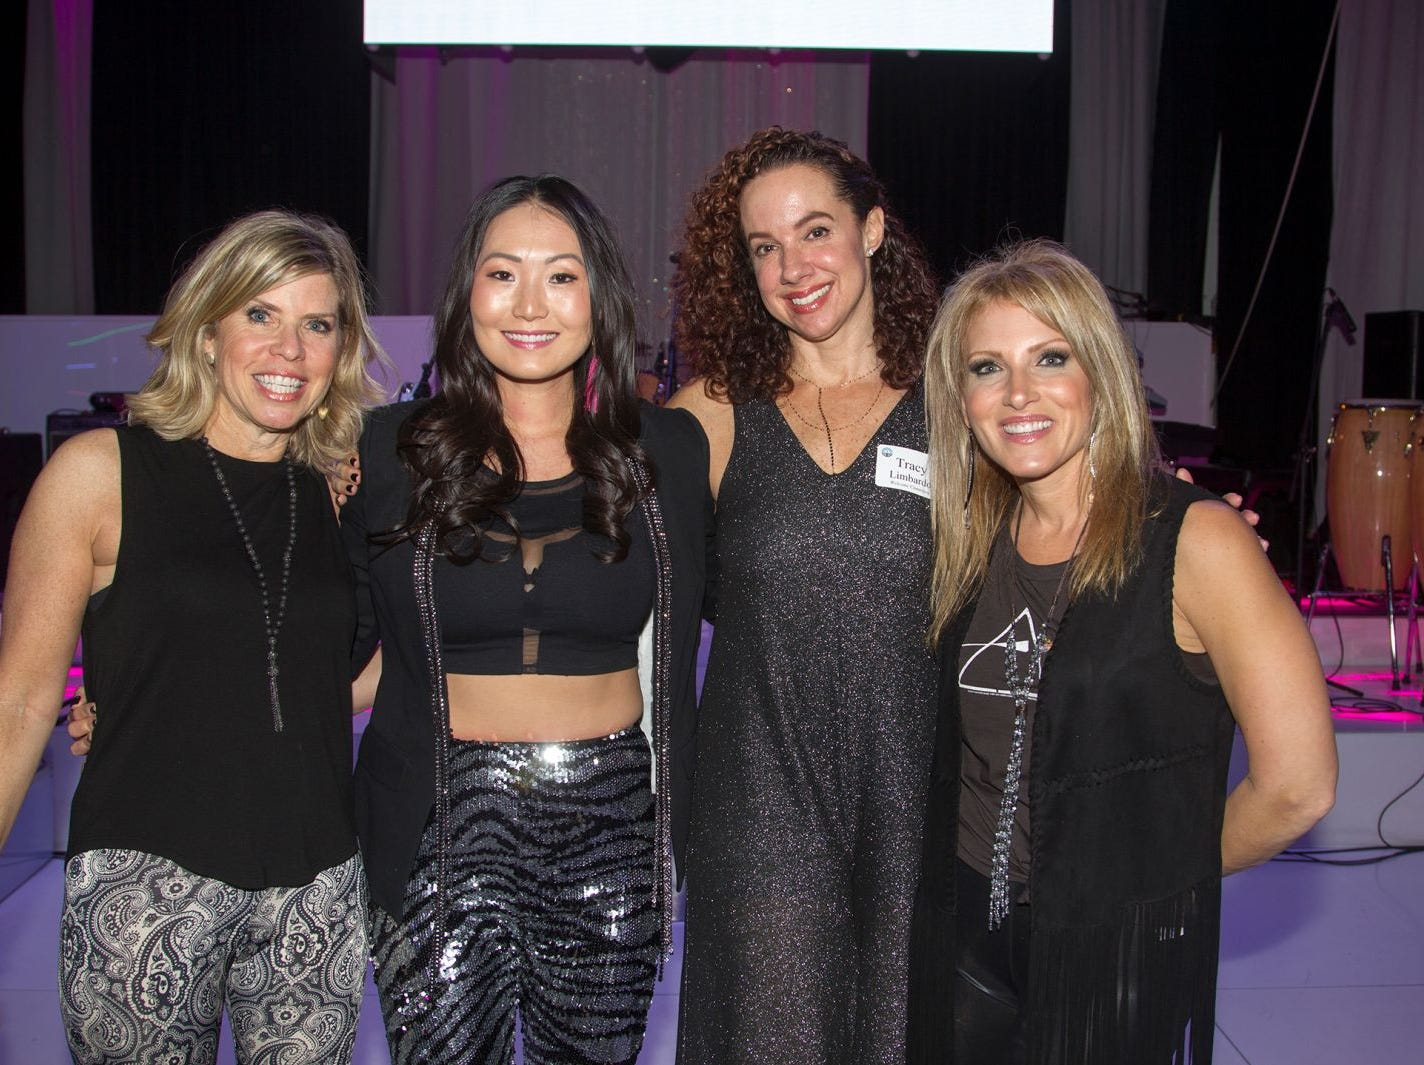 Donna Weintraub, Mina Barany, Tracy Limbardo, Stacy Esser. Jewish Federation of Northern New Jersey held its first Girl's Night Out dance party at Space in Englewood. 01/24/2019